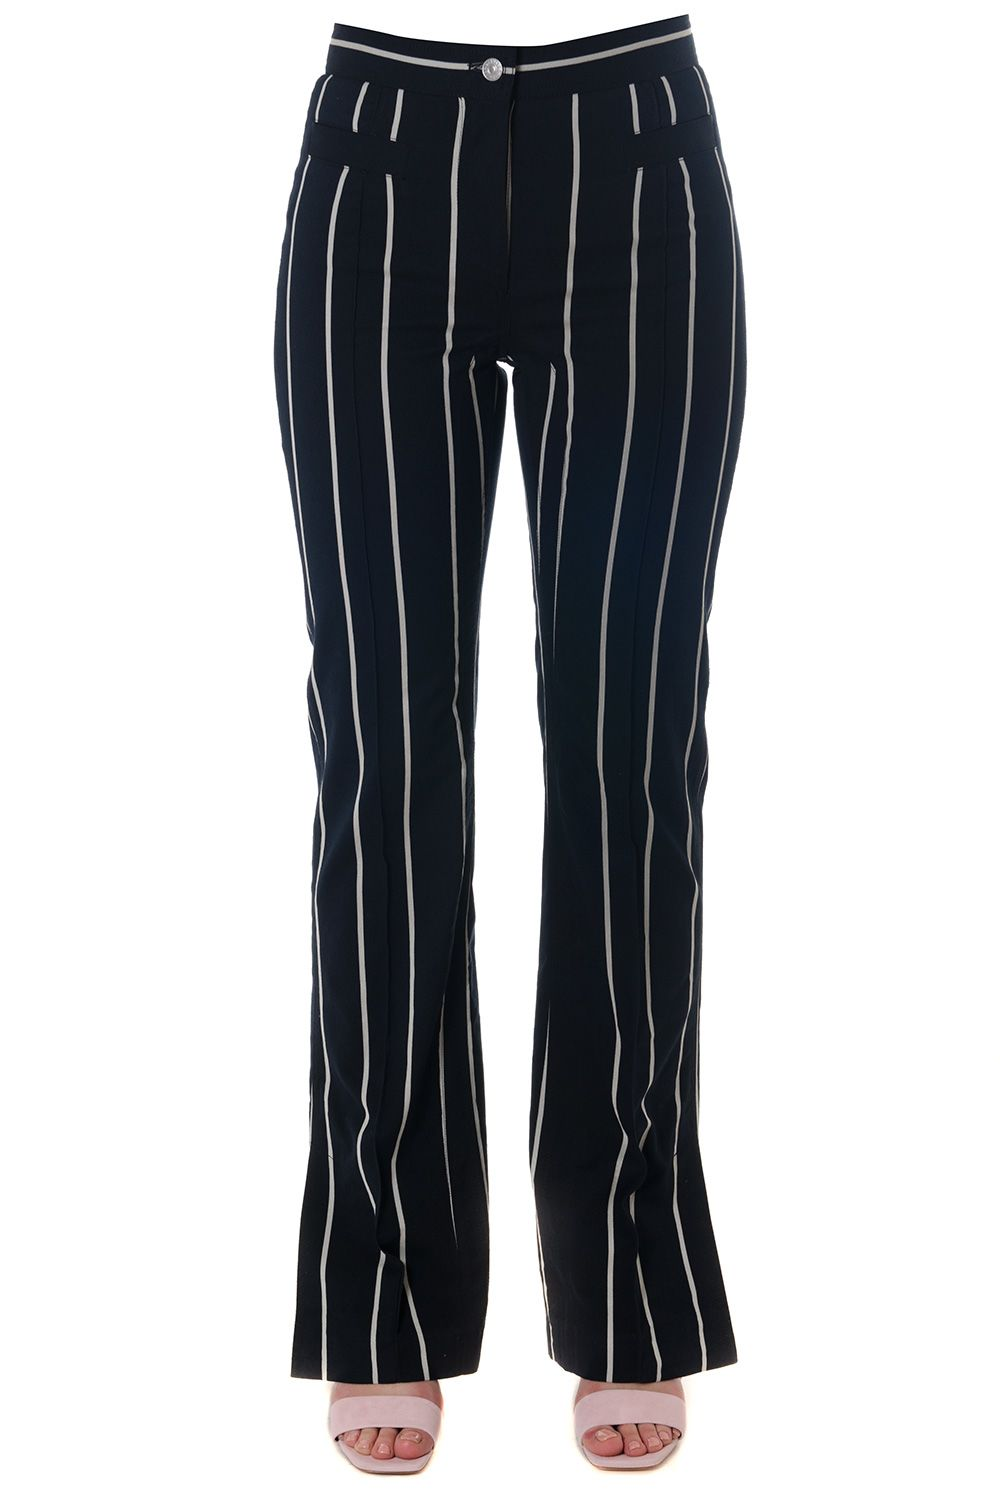 CELINE COTTON BLEND STRIPED TROUSERS, BLACK-WHITE